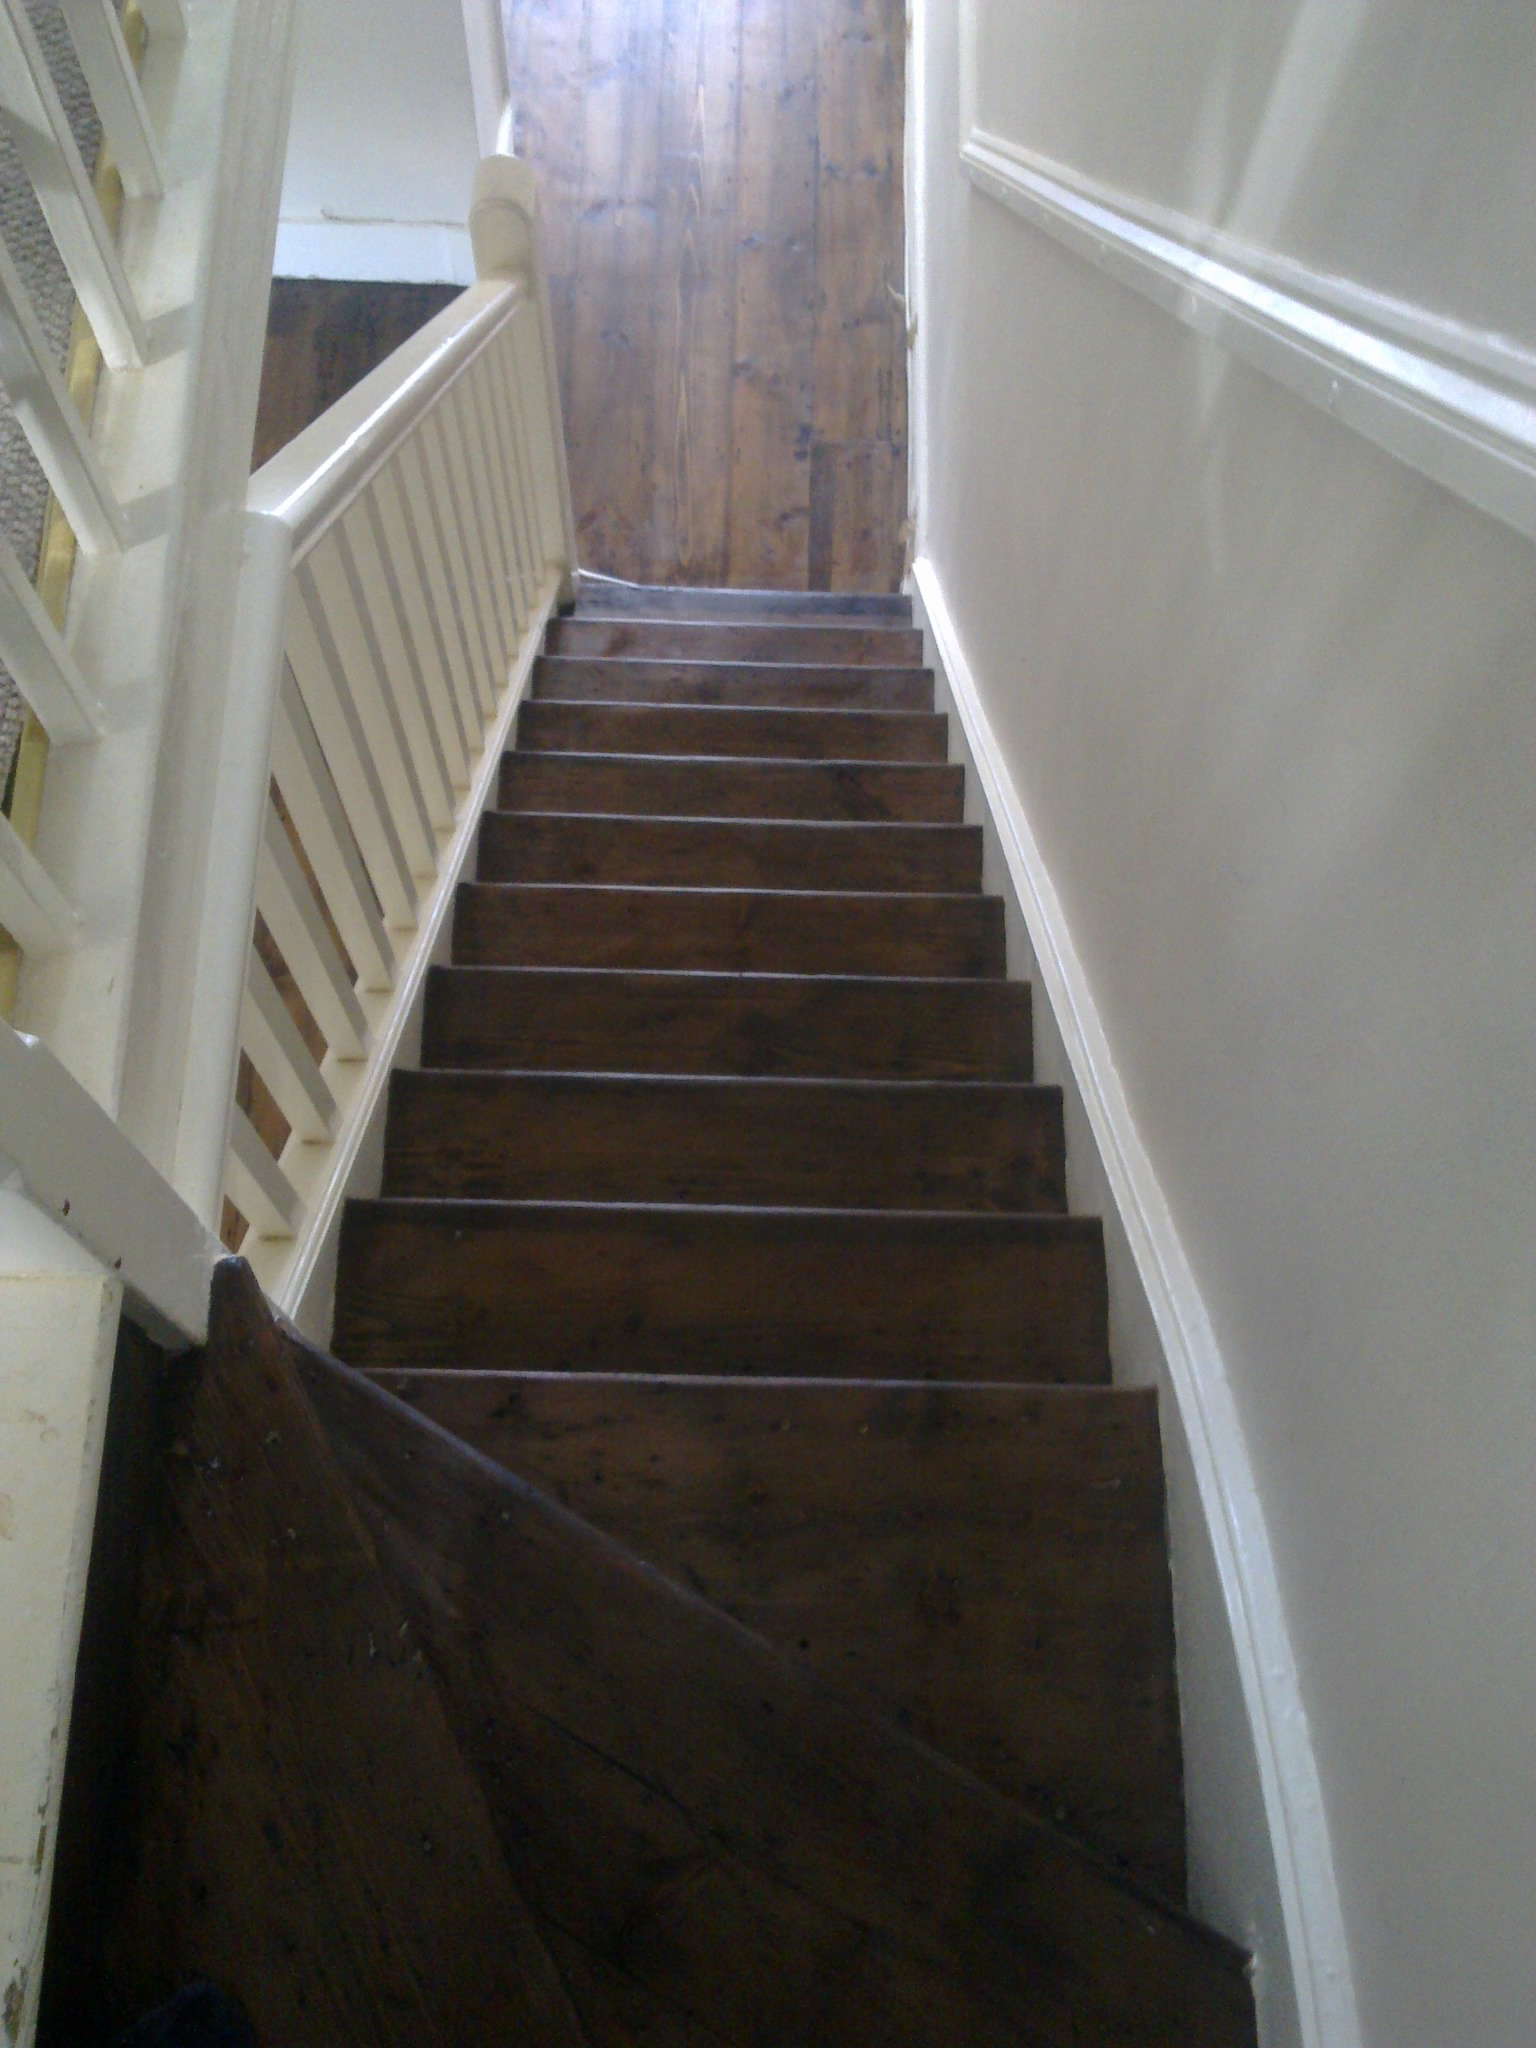 Original staircase sanded down, coloured with dark oak wood dye and sealed with two coats of clear varnish.